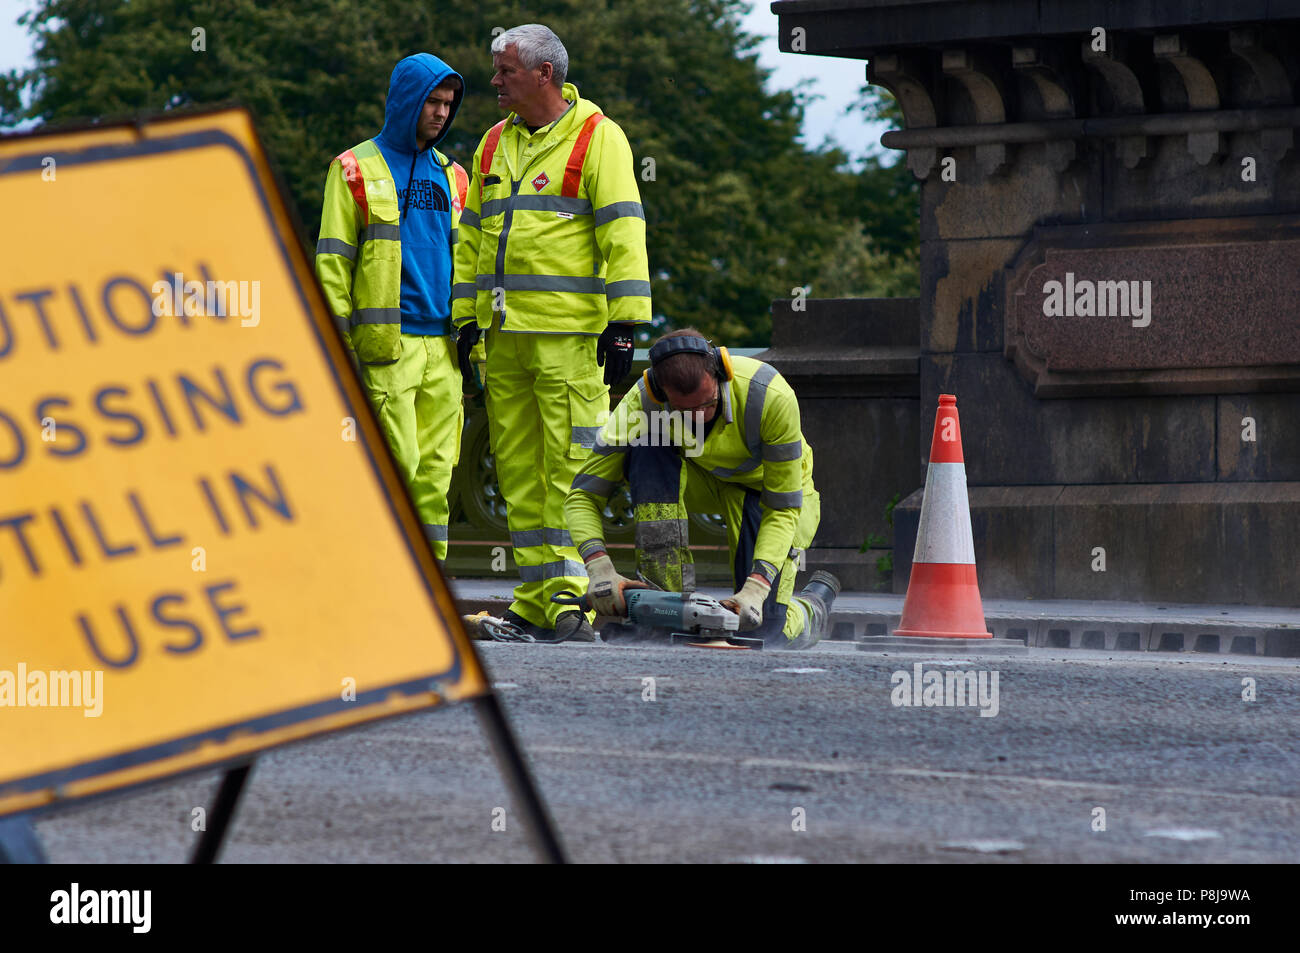 A road maintenance worker using an angle grinder power tool to finish off the road surface repairs. Worker is wearing ear defenders and high-vis top. - Stock Image